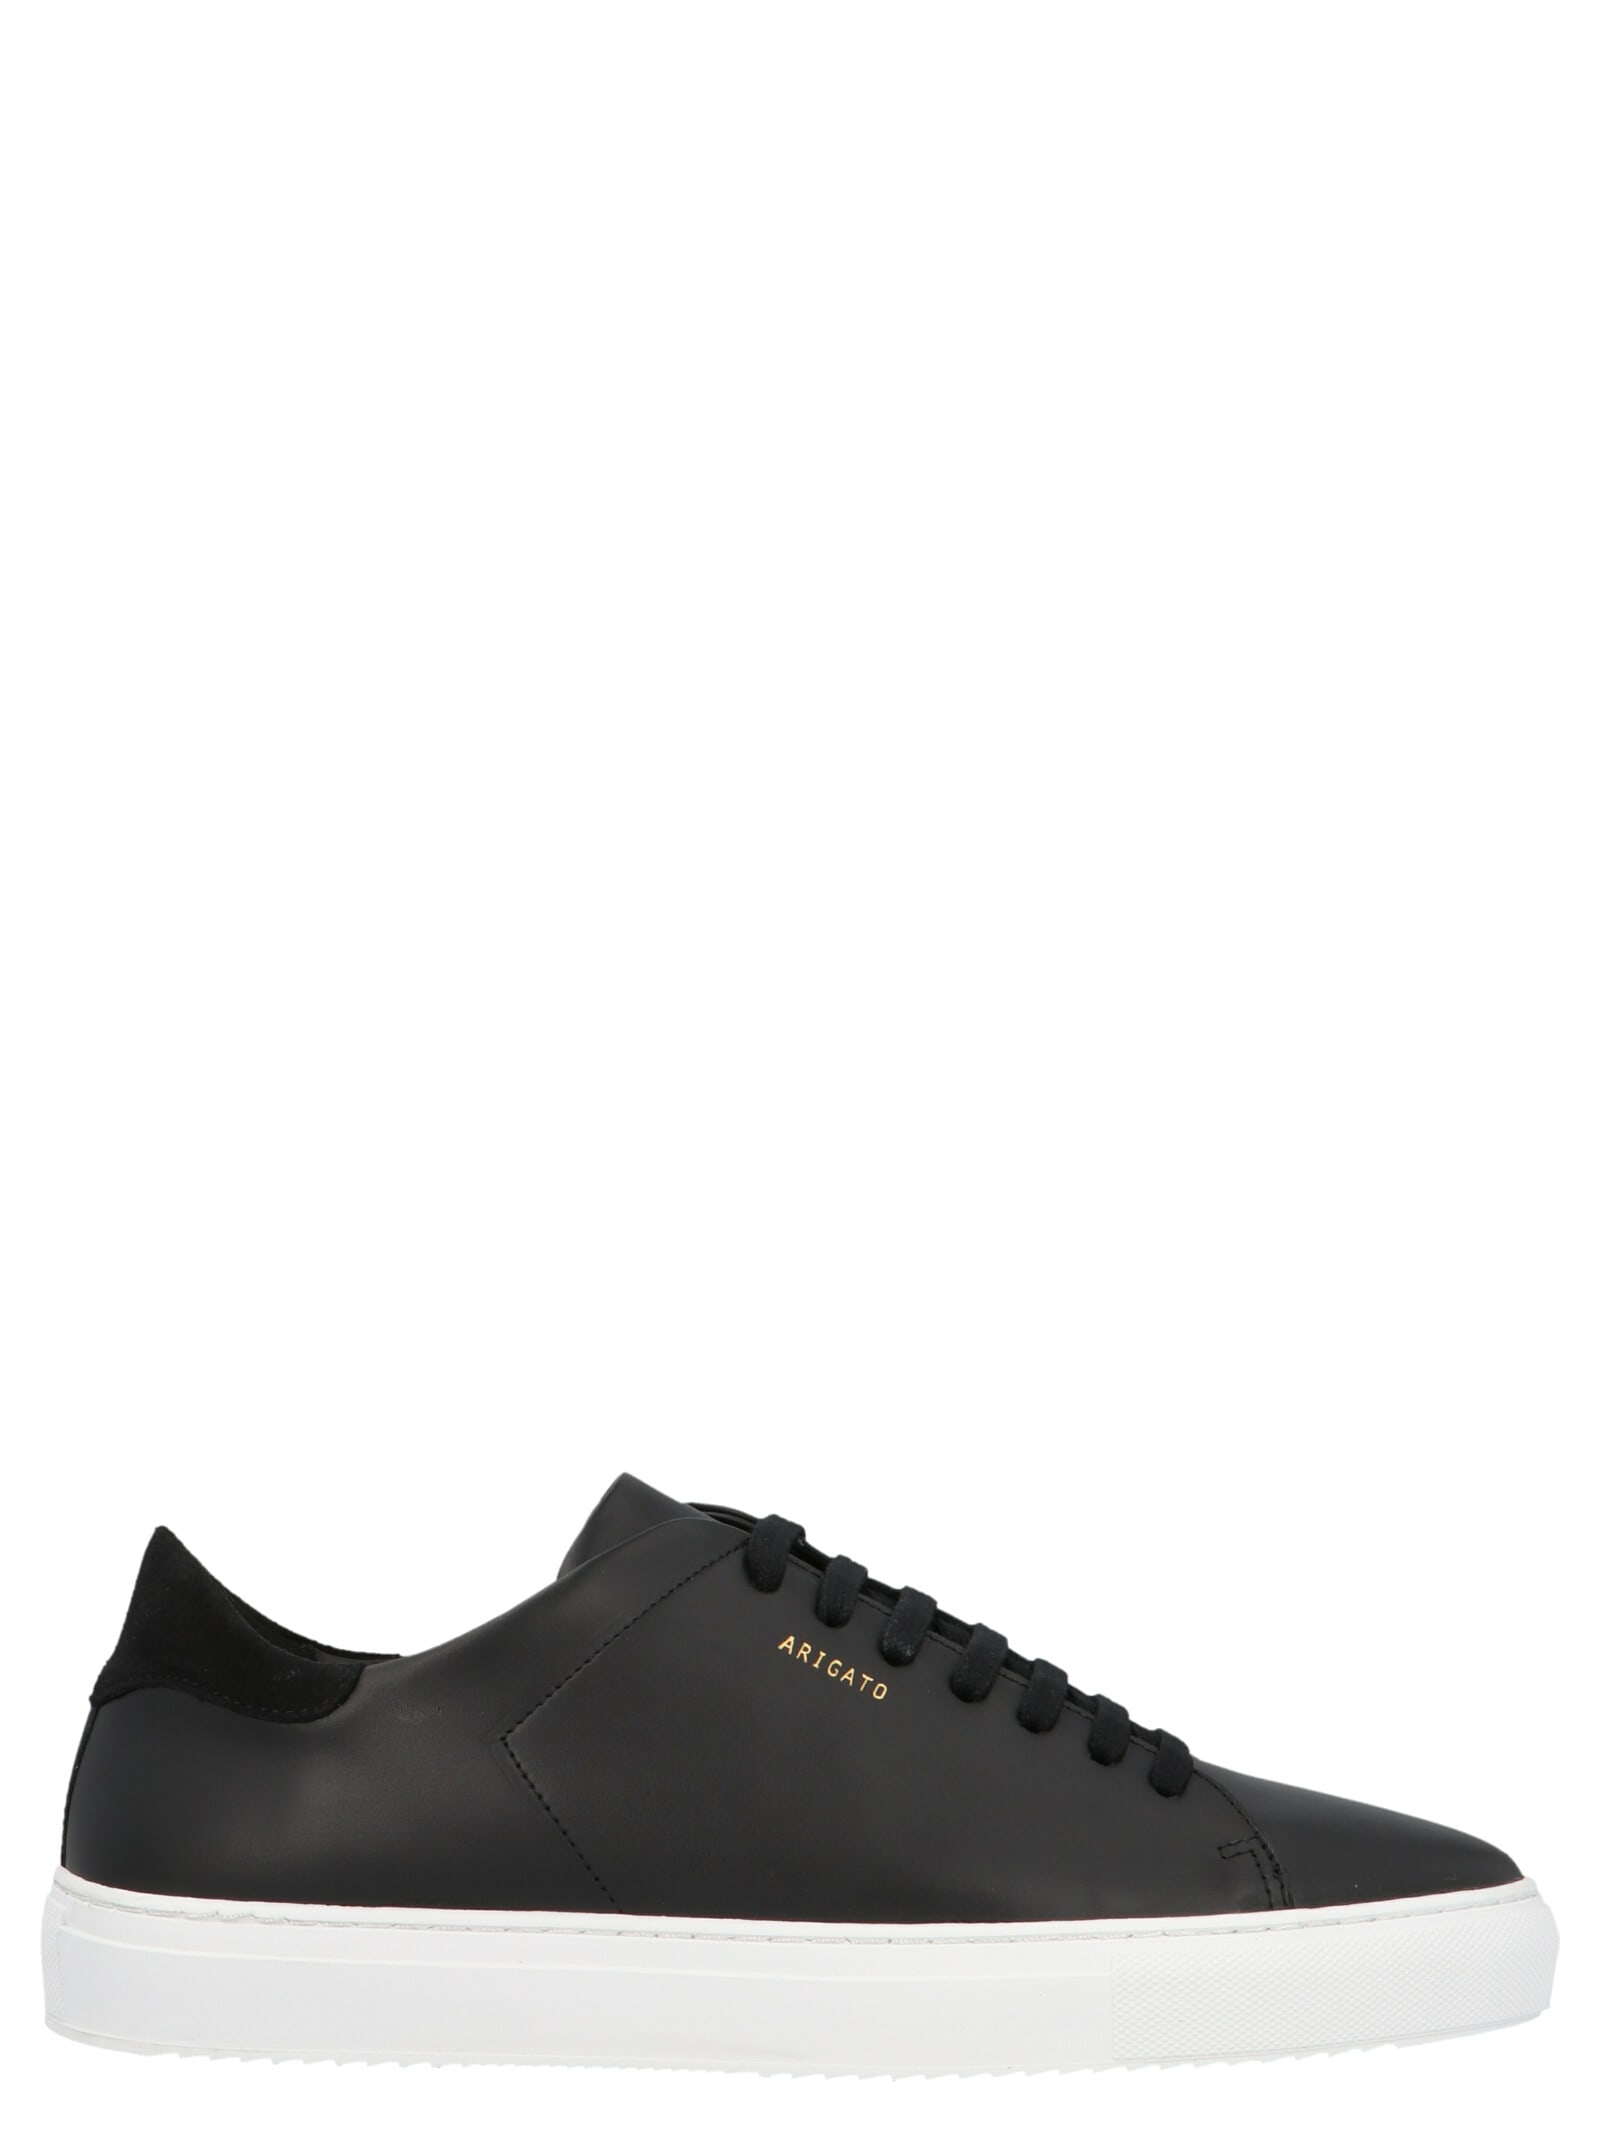 Axel Arigato clean 90 Shoes